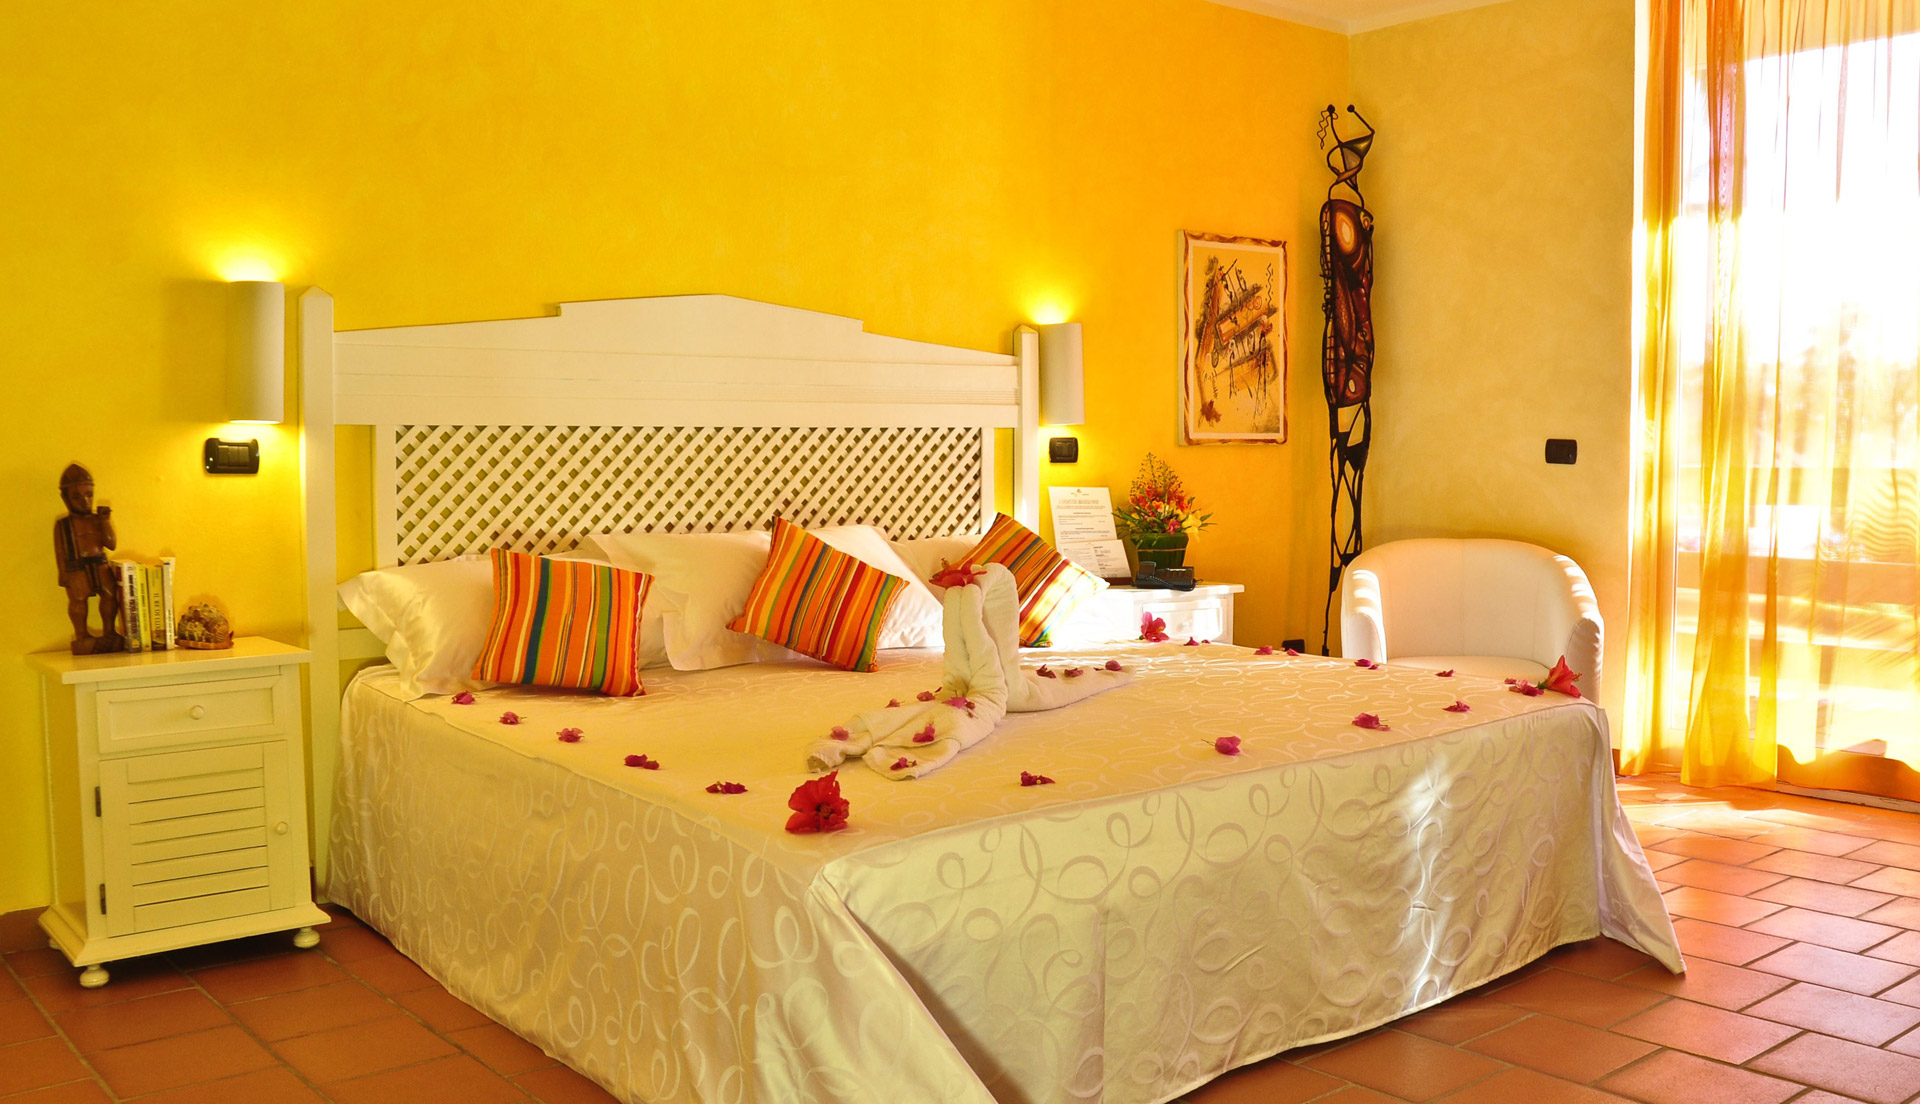 Enjoy the Romantic Atmosphere in Cozy Fresh Decorated Room